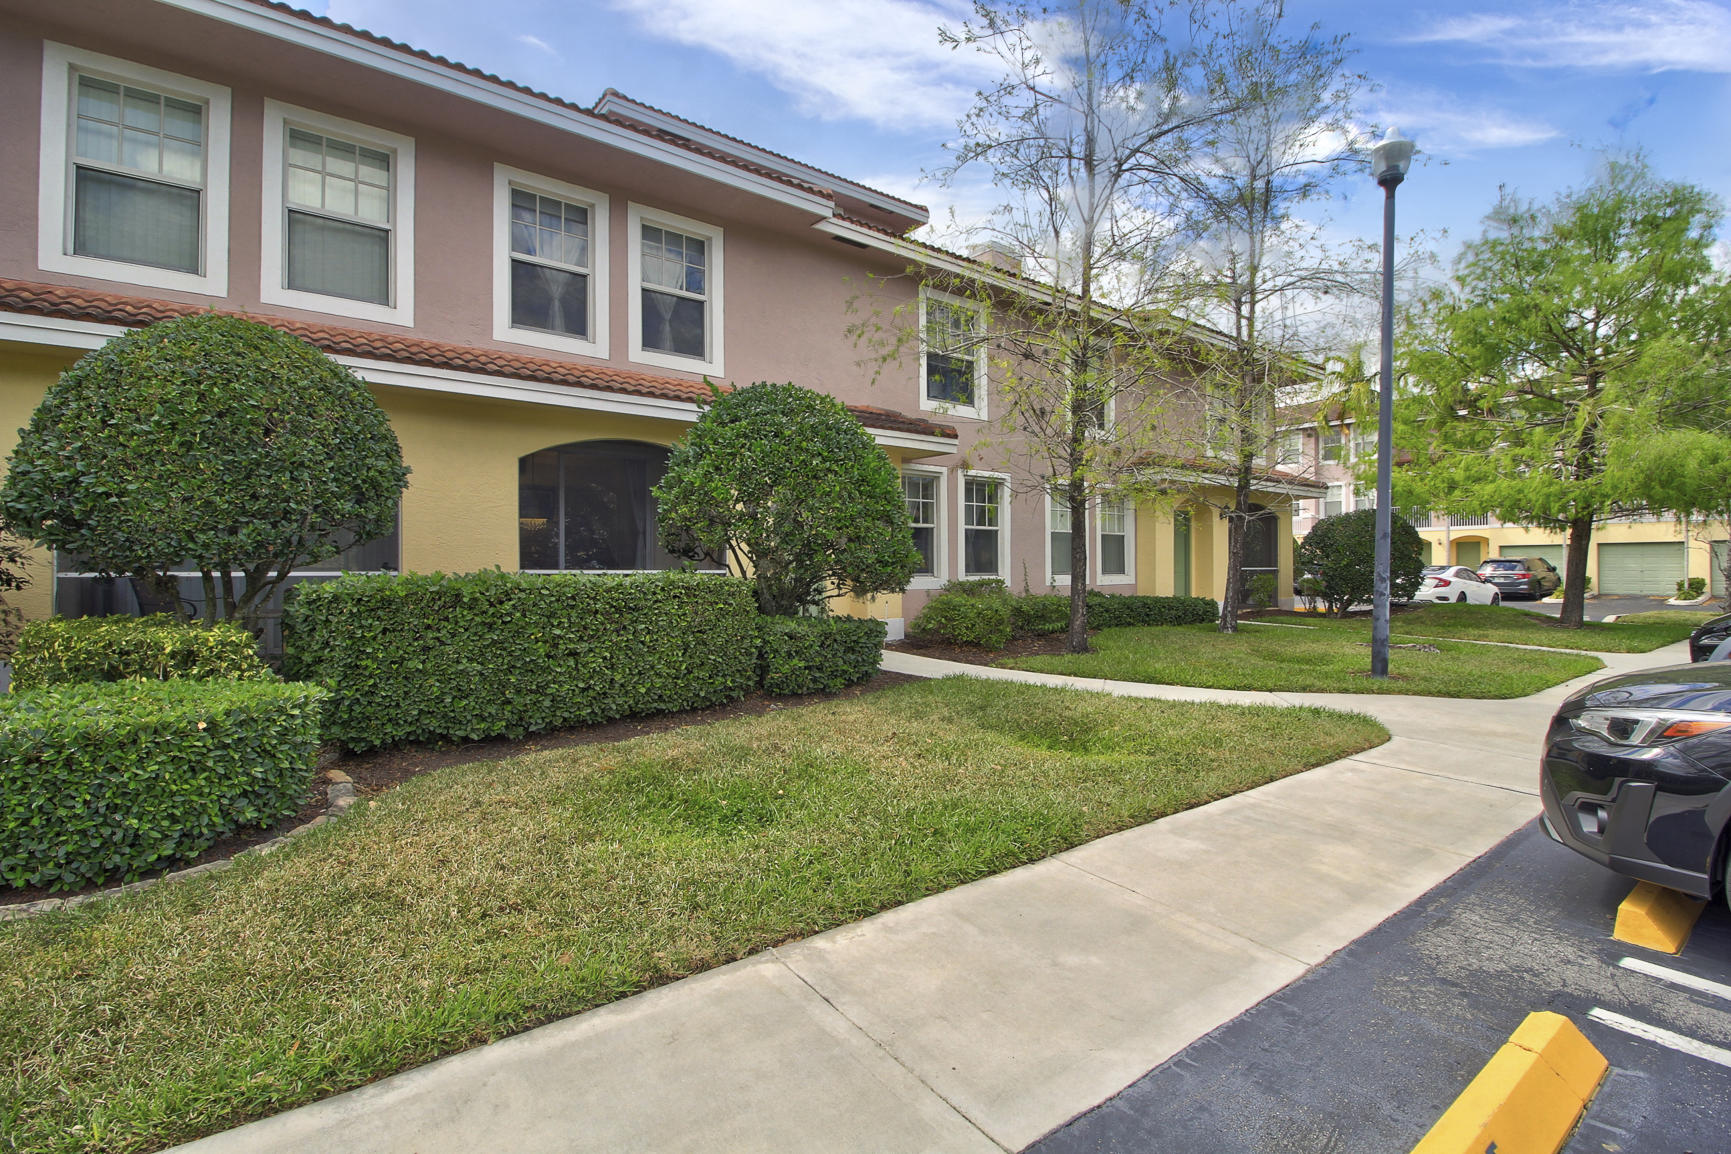 Home for sale in Cypress Pointe Coral Springs Florida